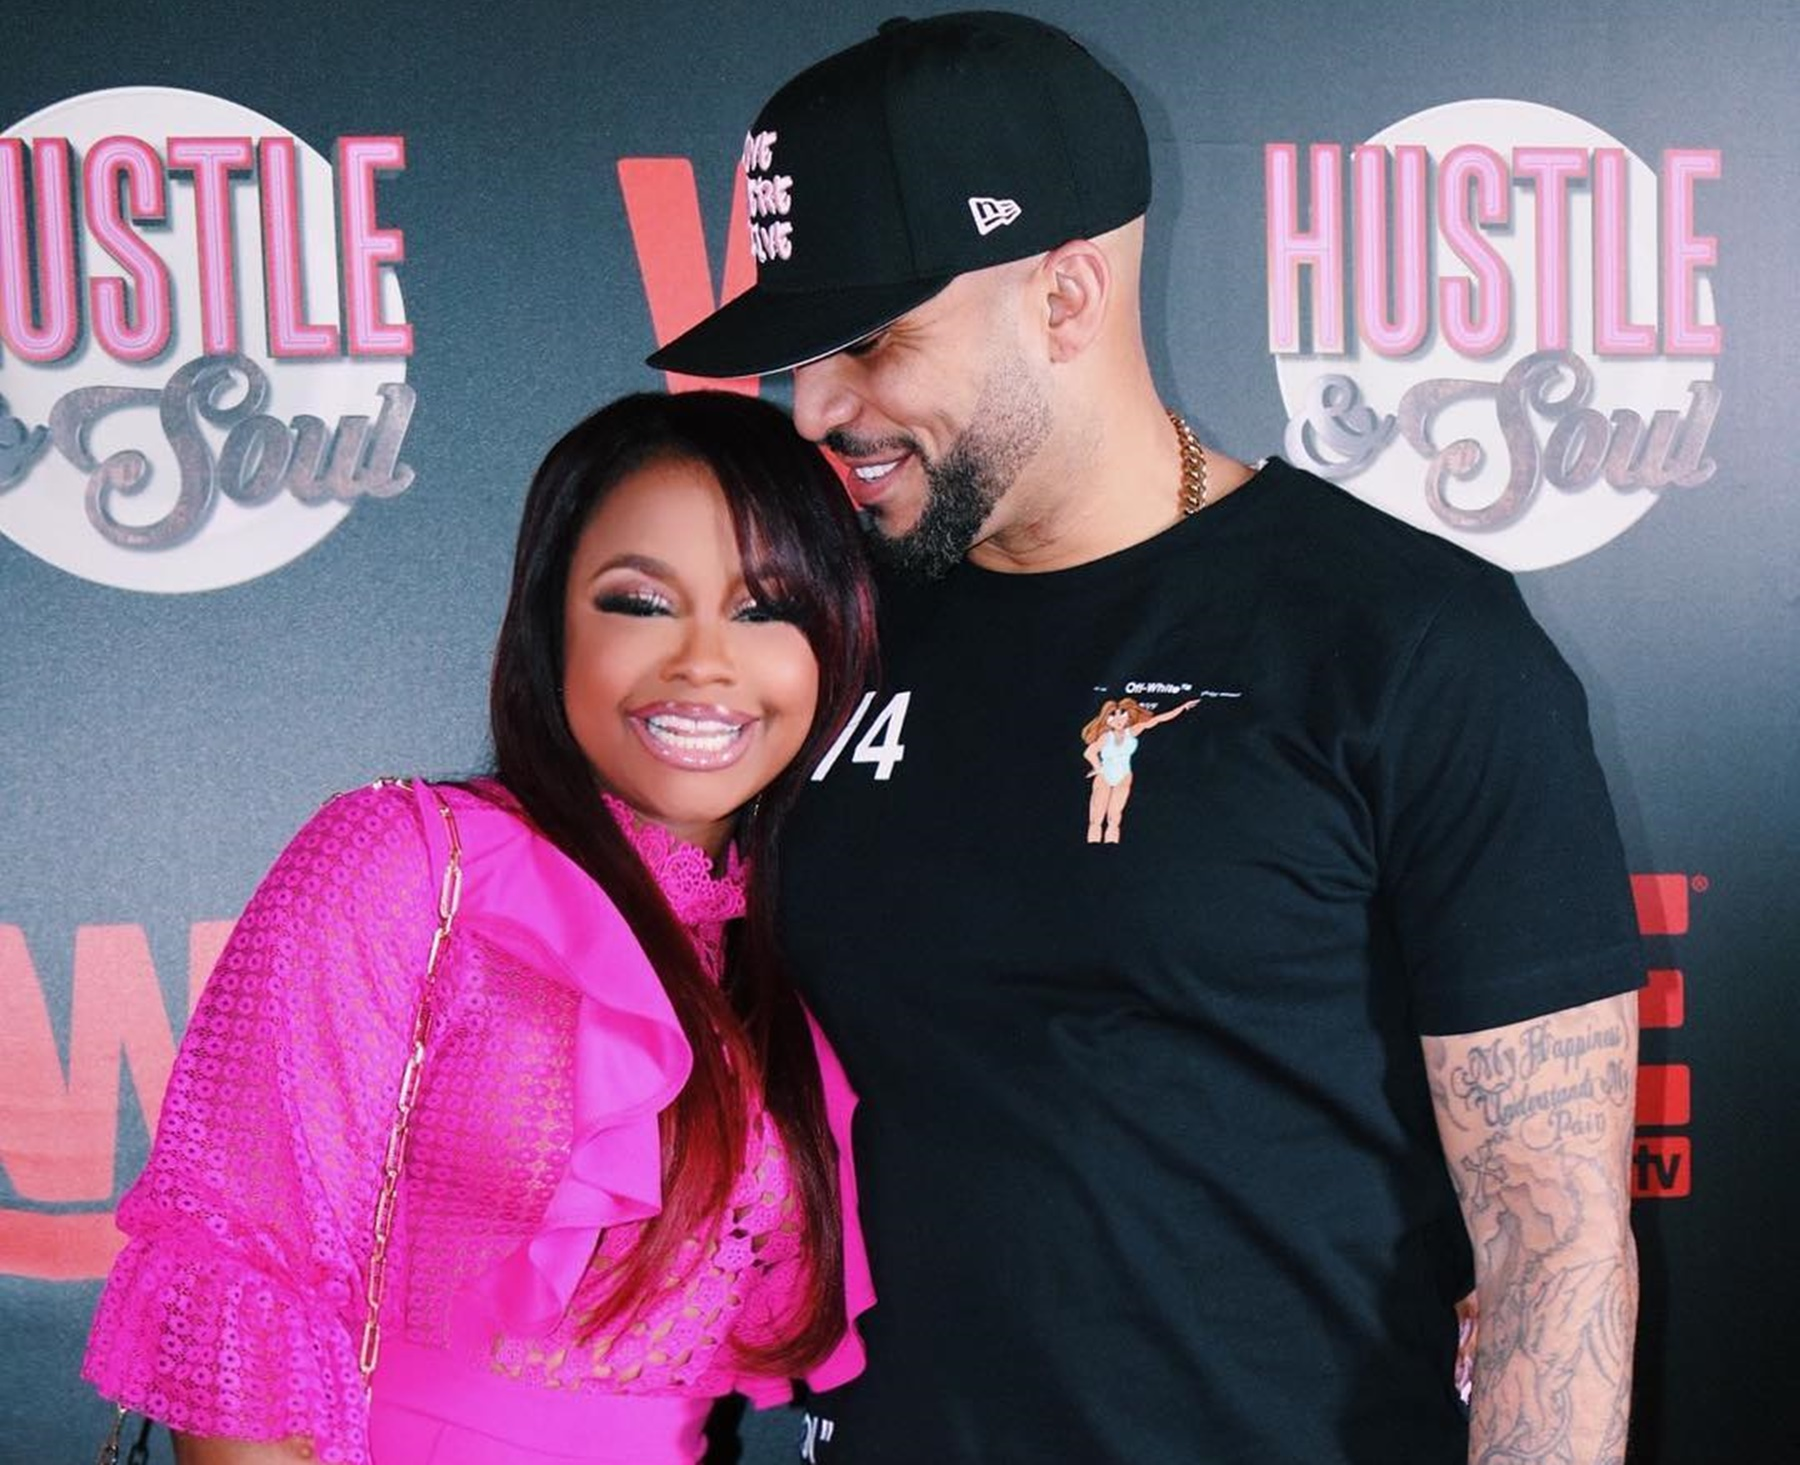 """phaedra-parks-gets-in-a-controversy-about-light-skinned-men-like-tone-kapone-after-posting-romantic-pictures-tiny-harris-defends-former-rhoa-star"""